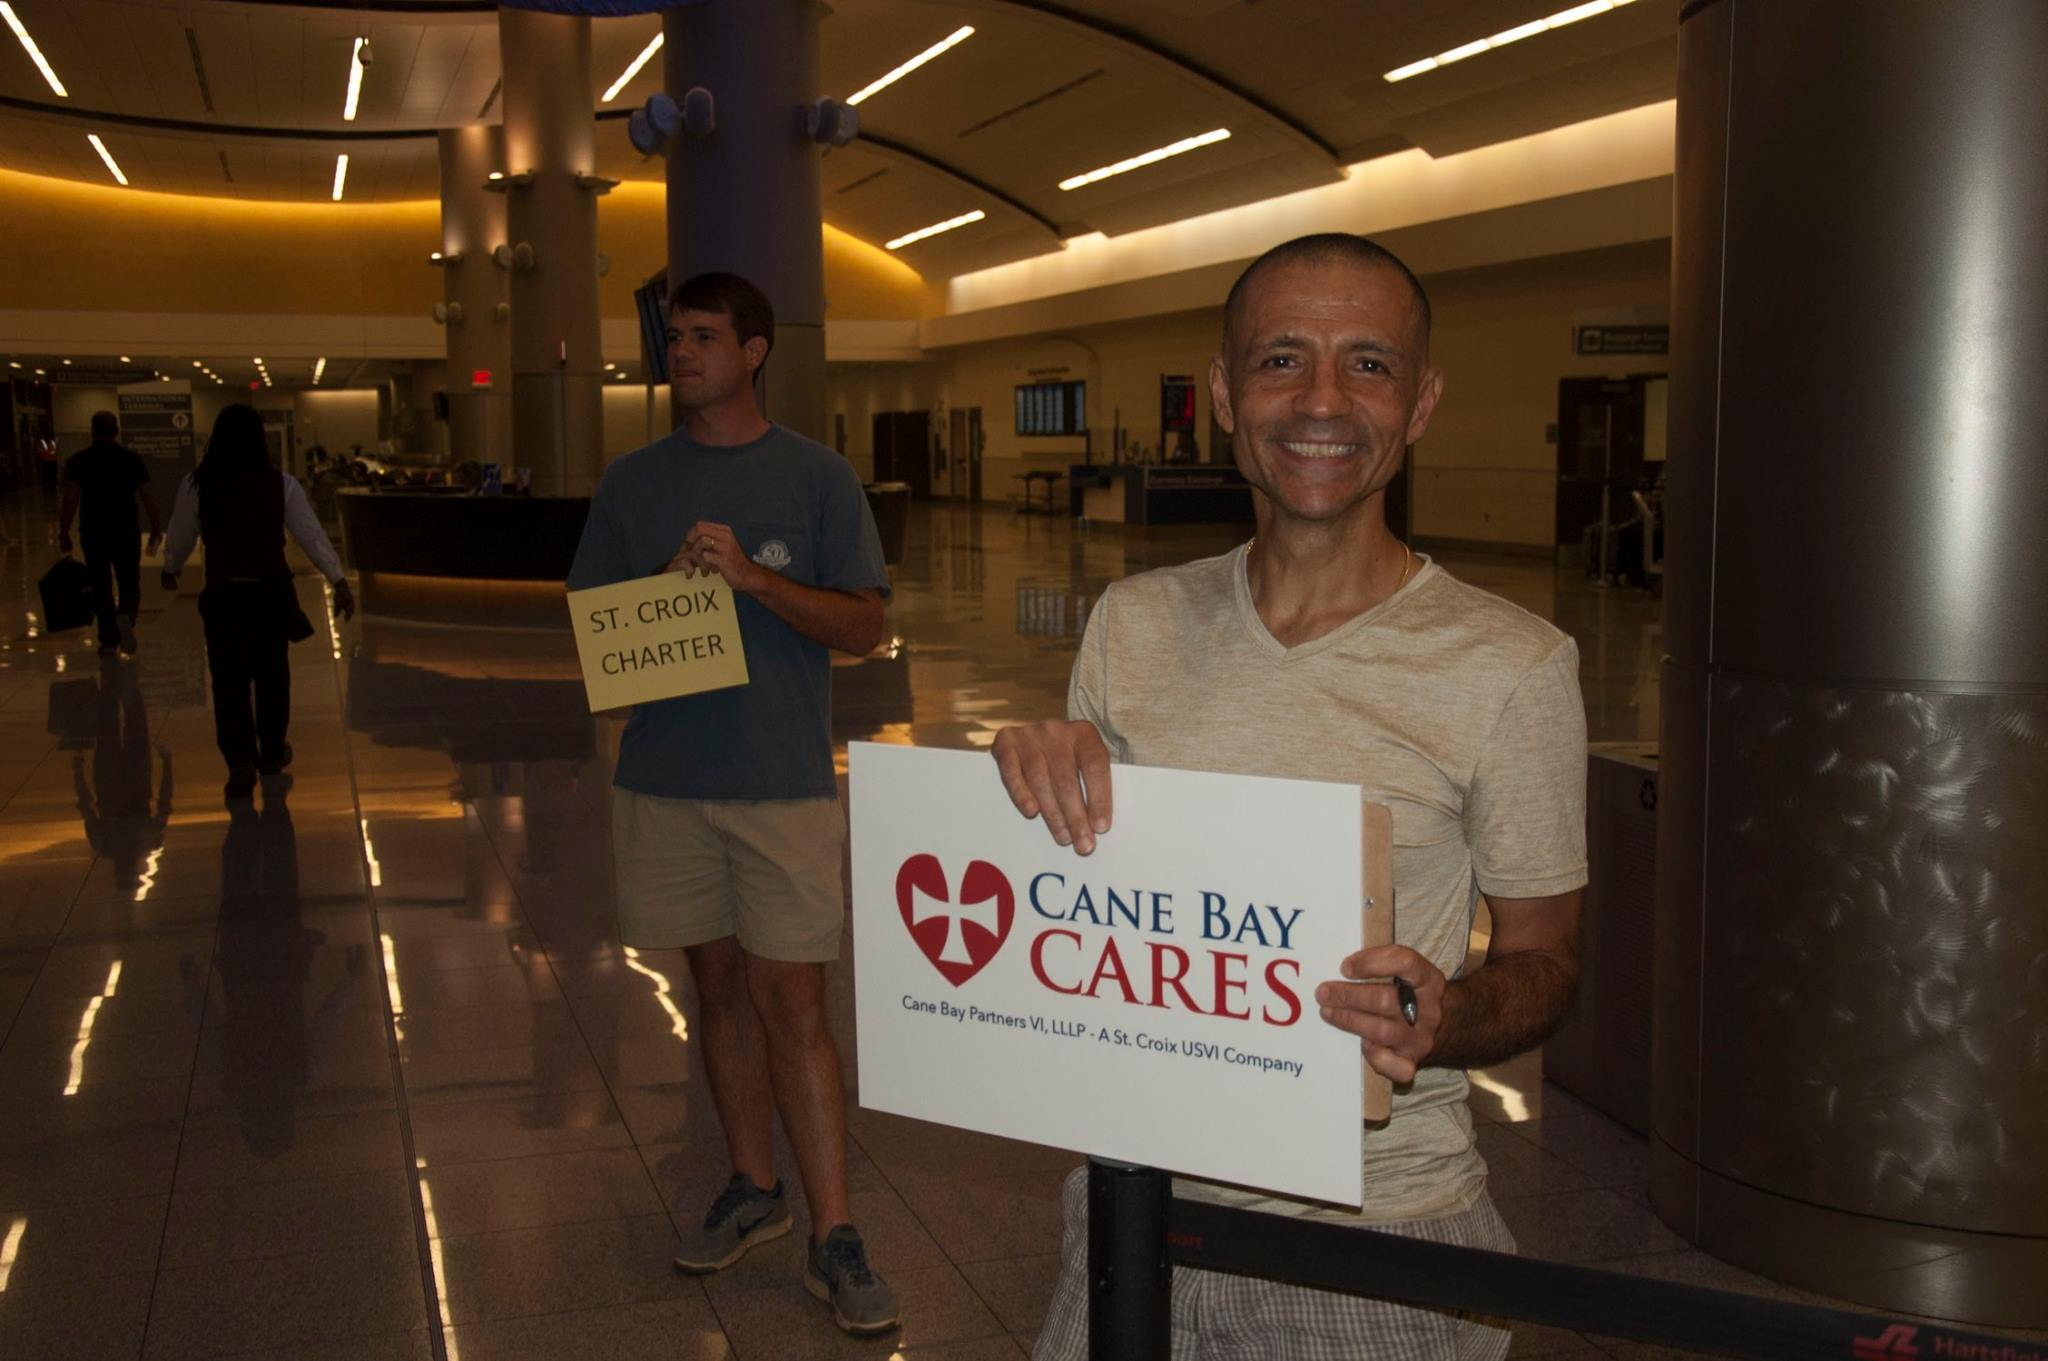 Cane Bay Partners Employees Volunteer To Greet Fellow Employees And Other Evacuees From St. Croix To Altanta.